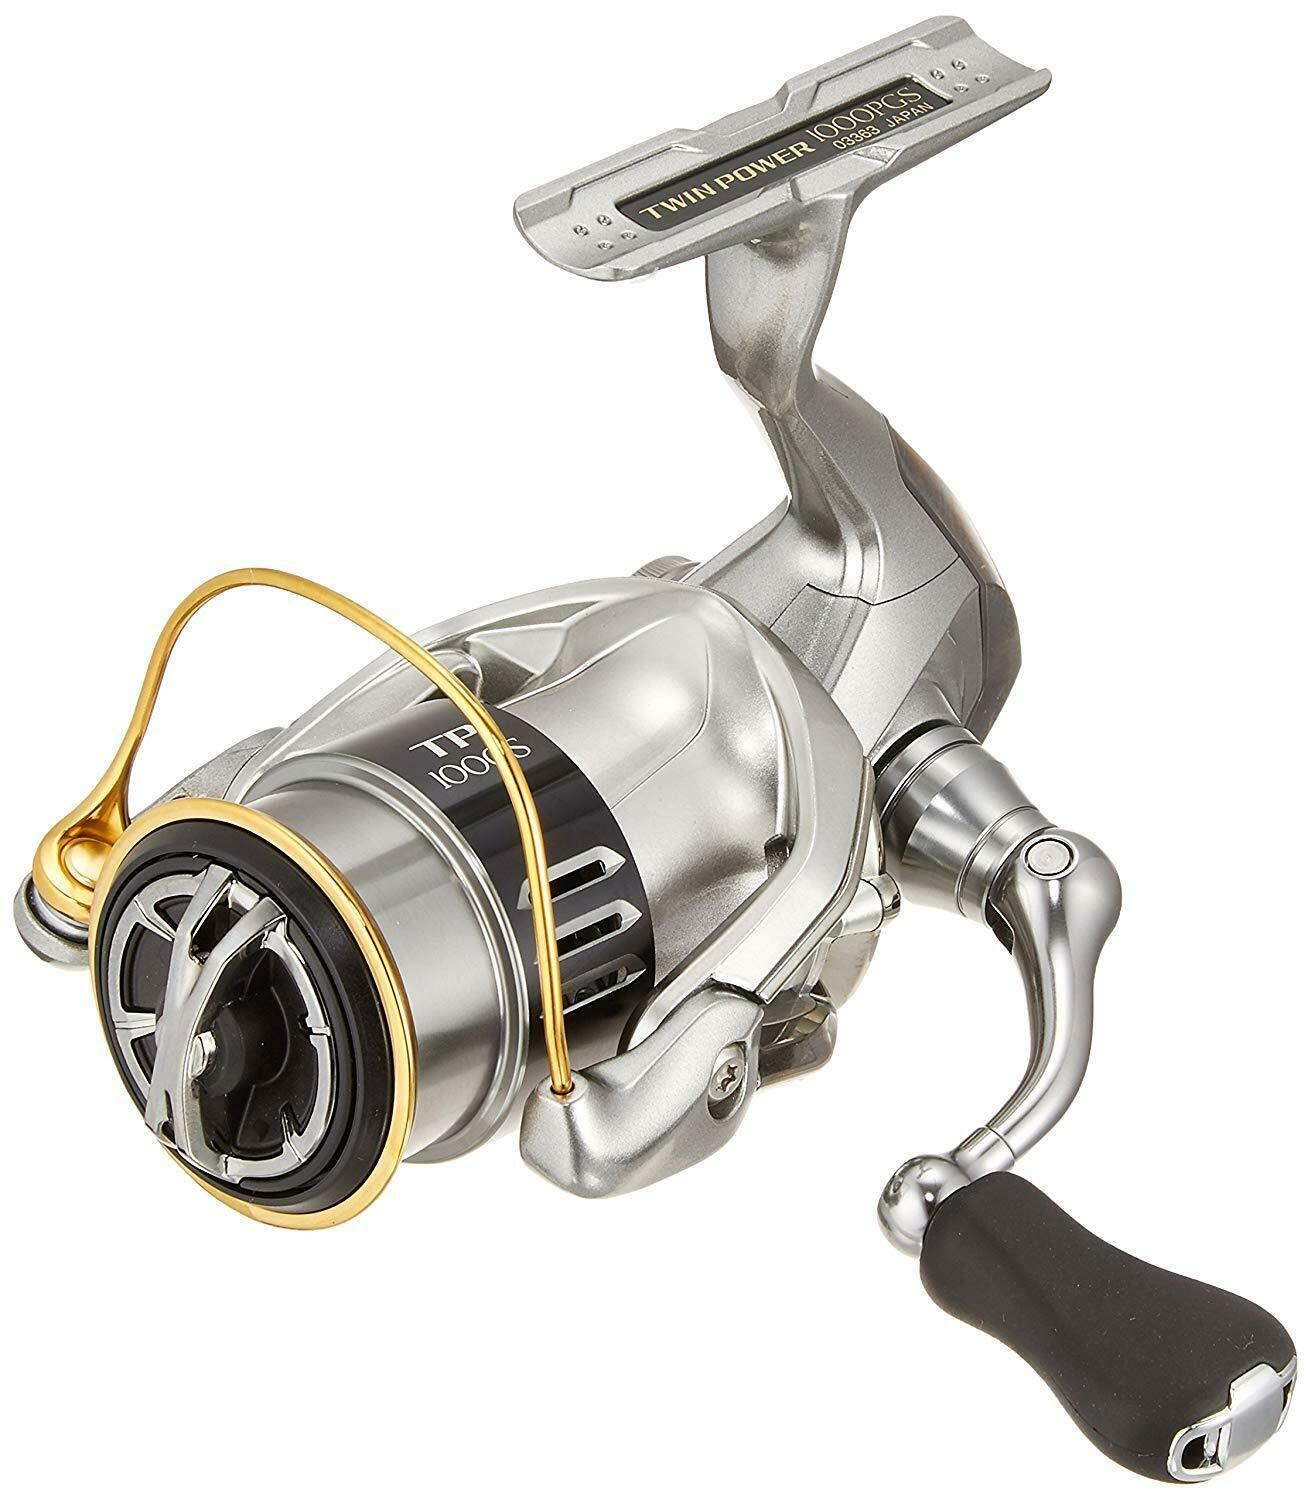 SHIMANO TWIN POWER 1000PGS Spinning Reel From Japan Fishing New